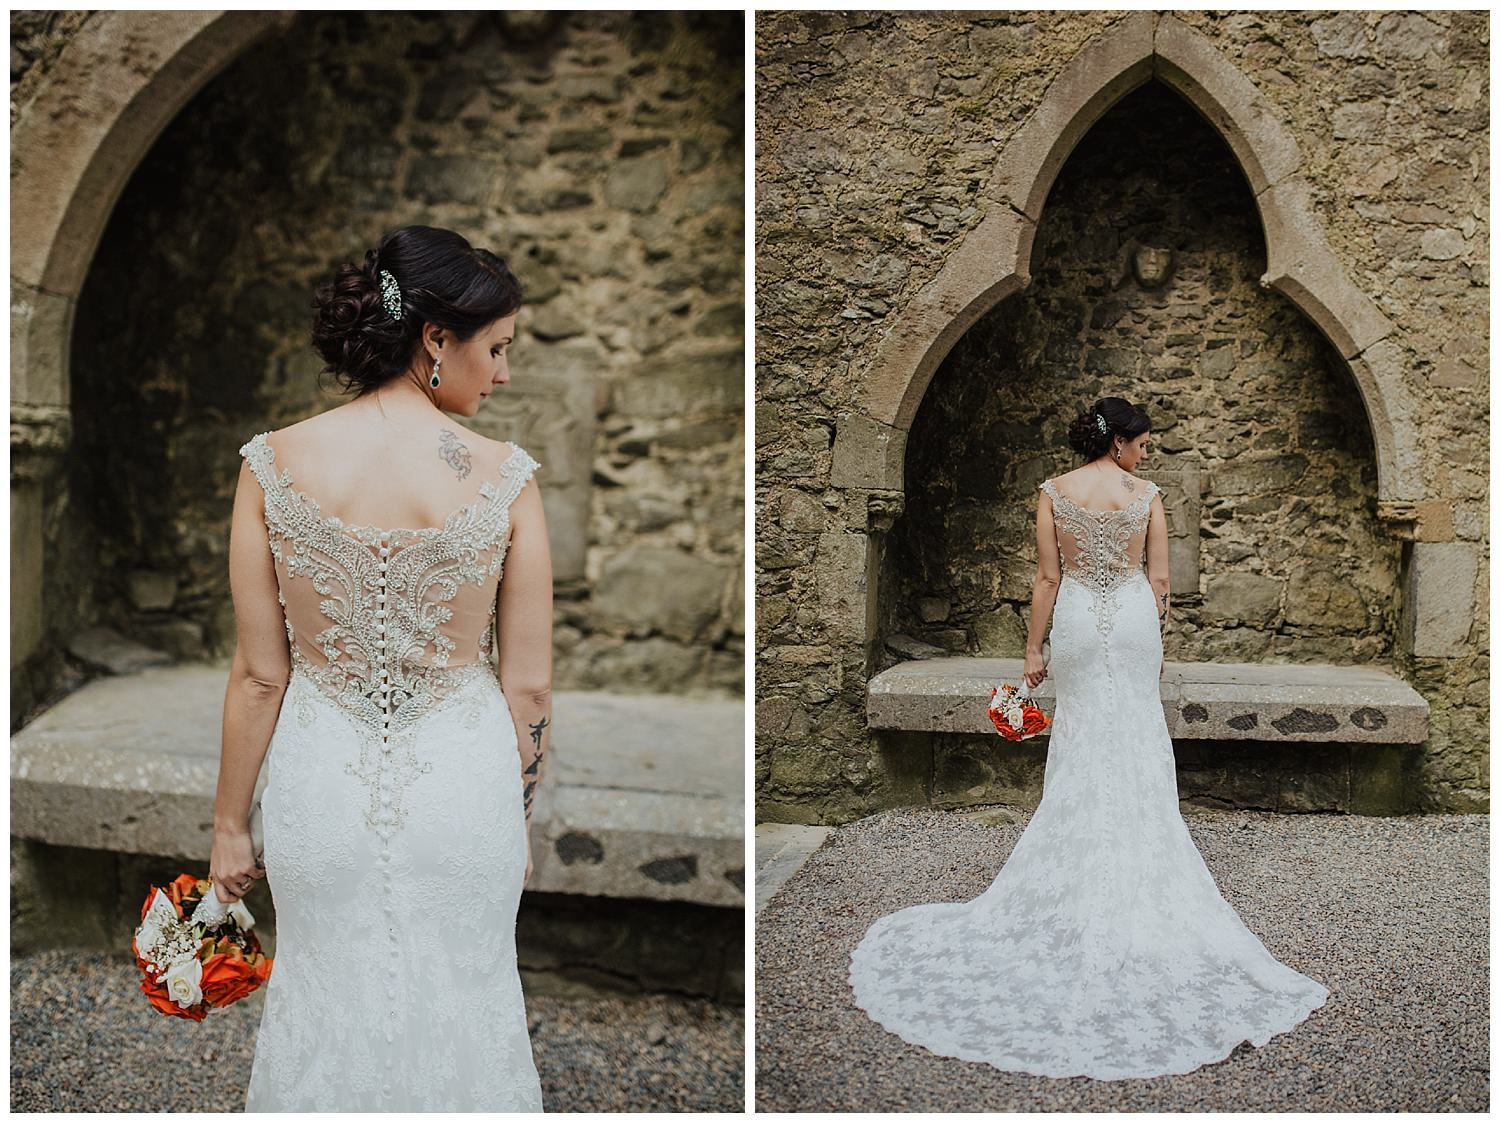 L&K_rock_of_cashel_cahir_castle_ireland_elopement_wedding_photographer_399.jpg